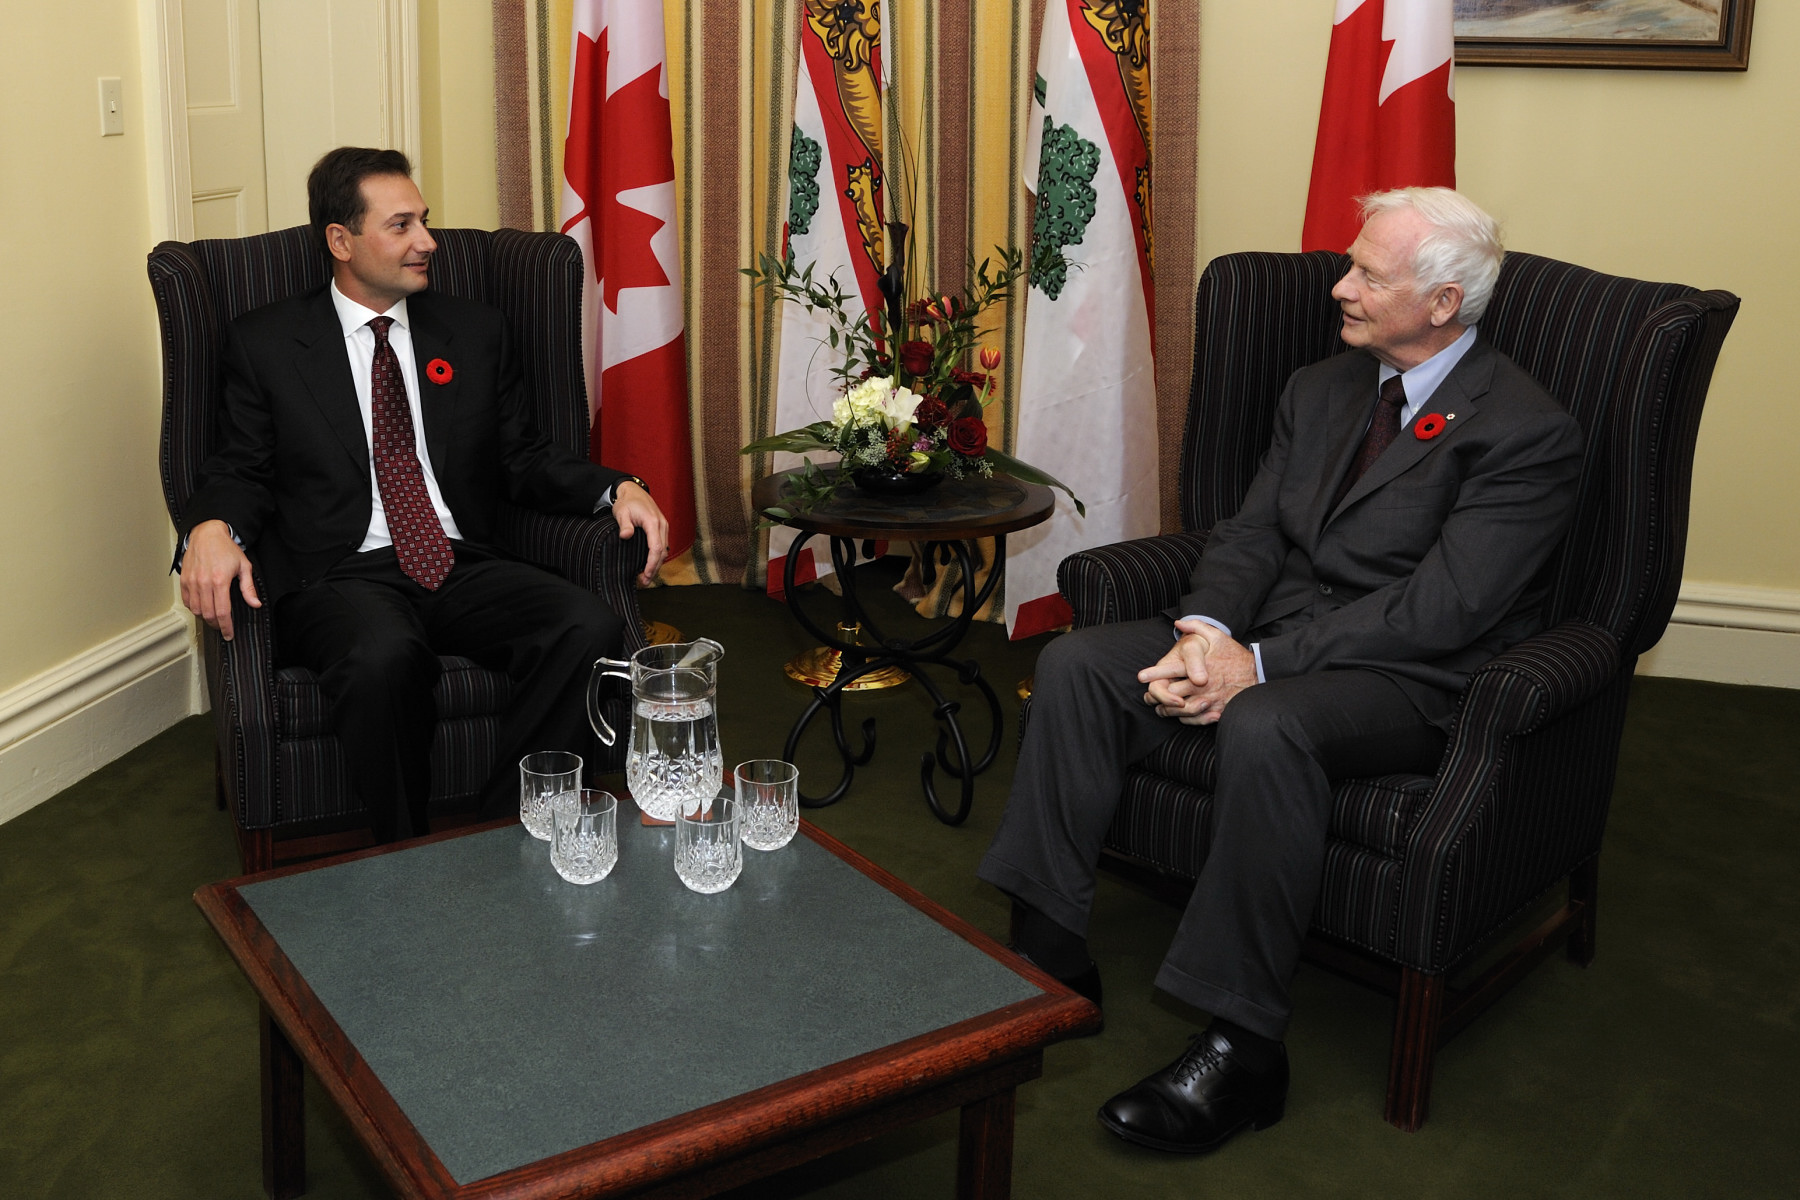 Inside Province House, His Excellency has a meeting with the Honourable Robert W.J. Ghiz, Premier of Prince Edward Island.